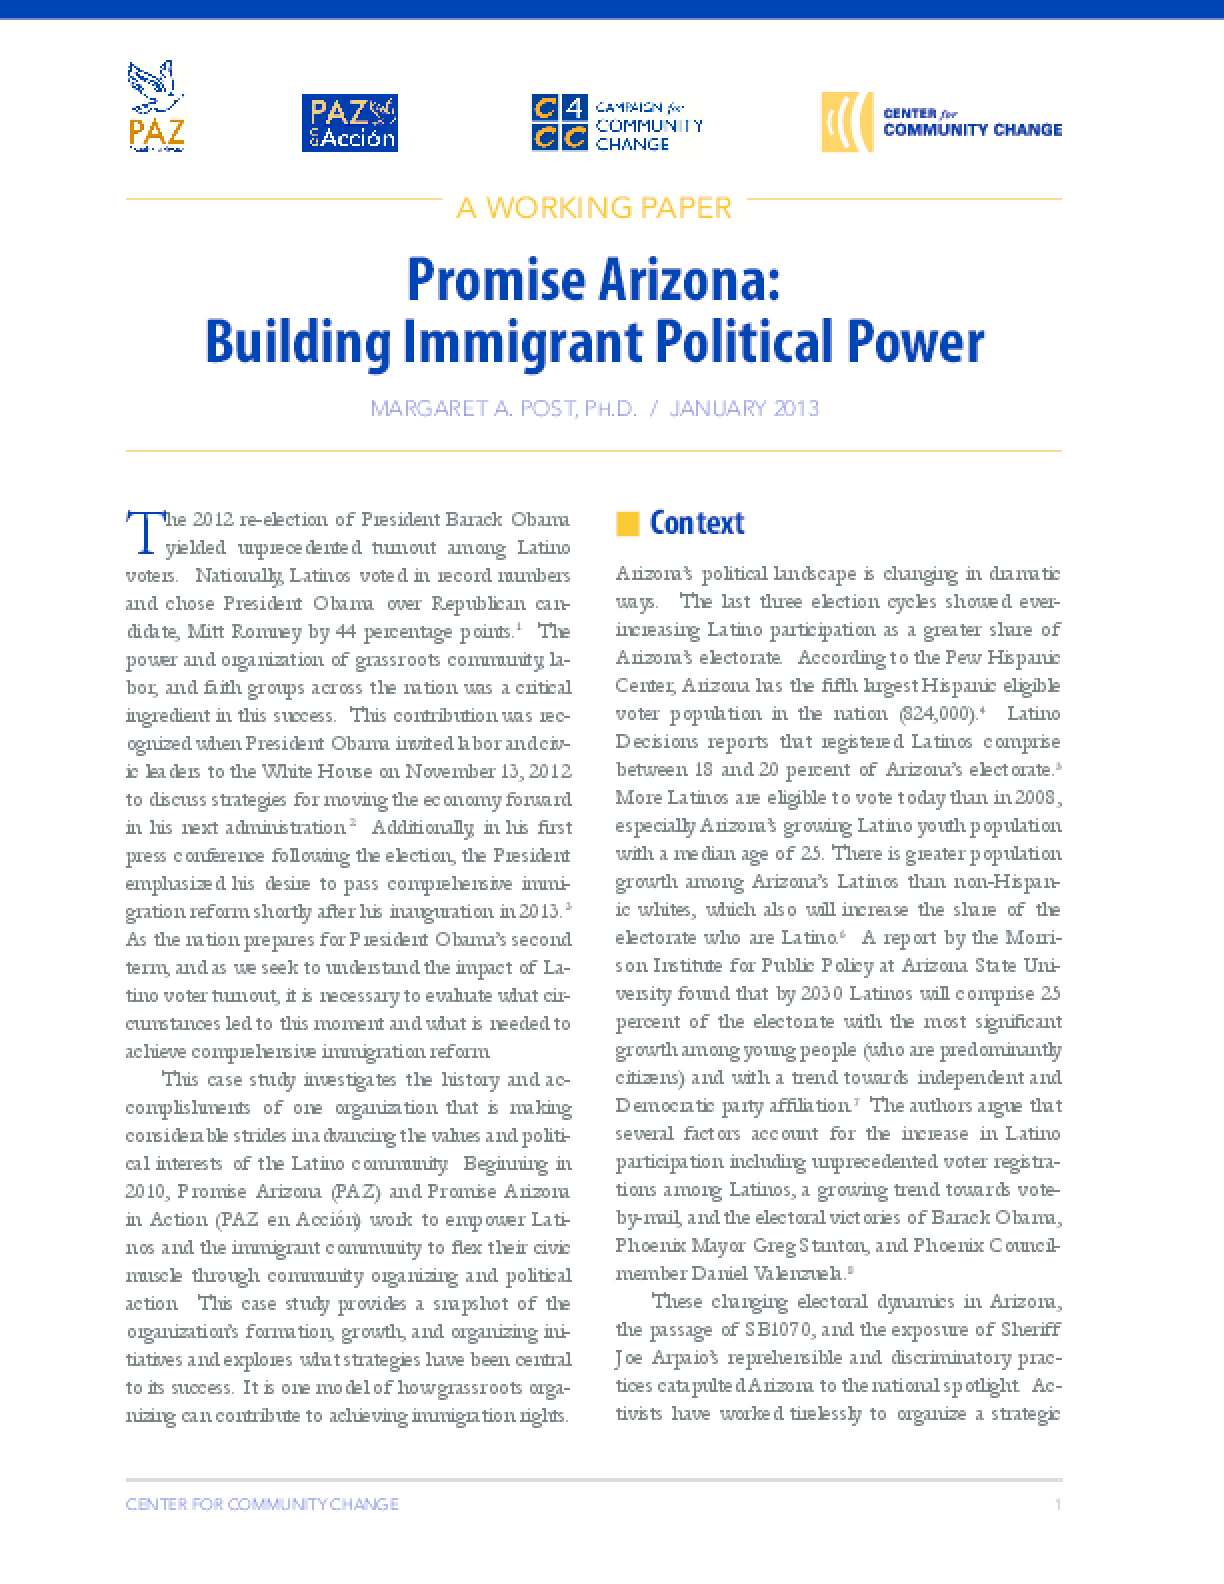 Promise Arizona: Building Immigrant Political Power